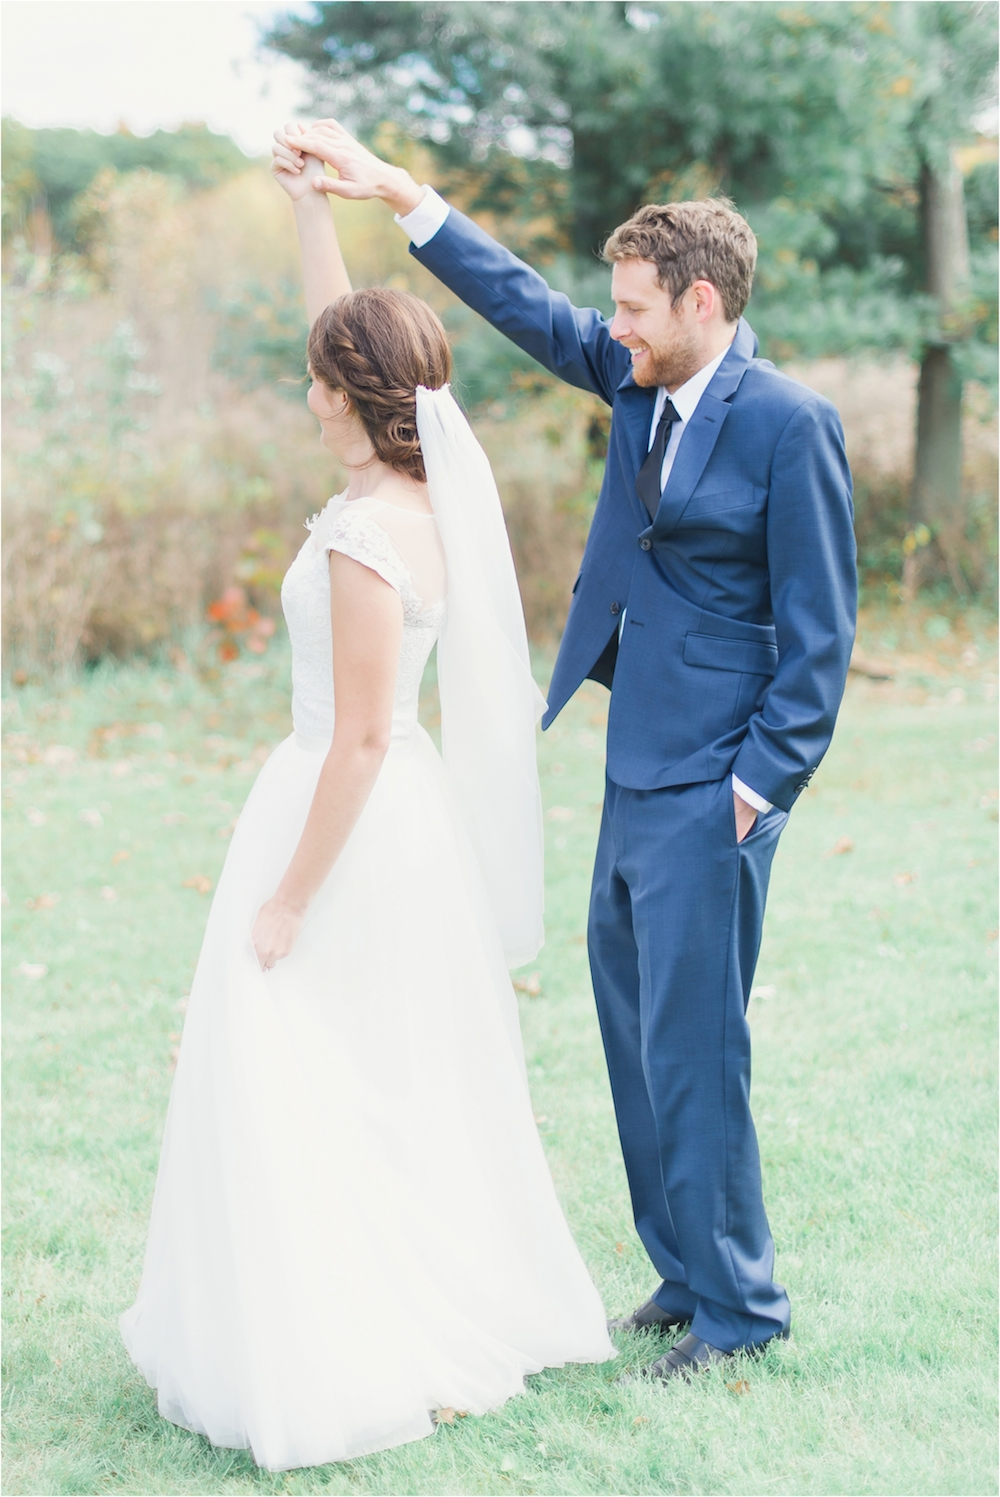 East lansing private estate wedding amy jesse jennifer boris east lansing michigan outdoor fall horse wedding photo ombrellifo Gallery